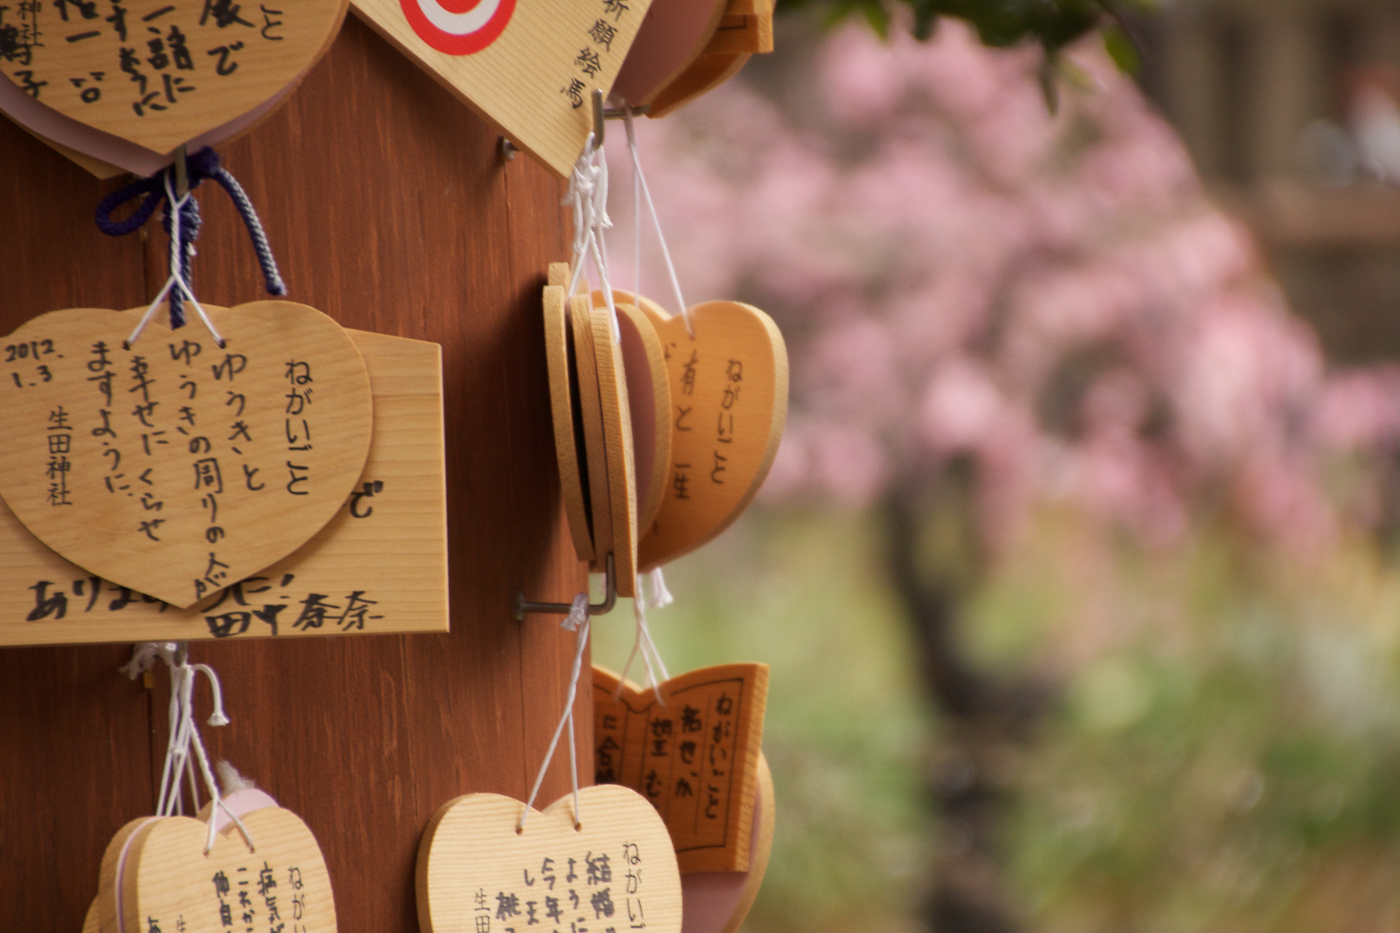 Prayer plaques in Kobe.